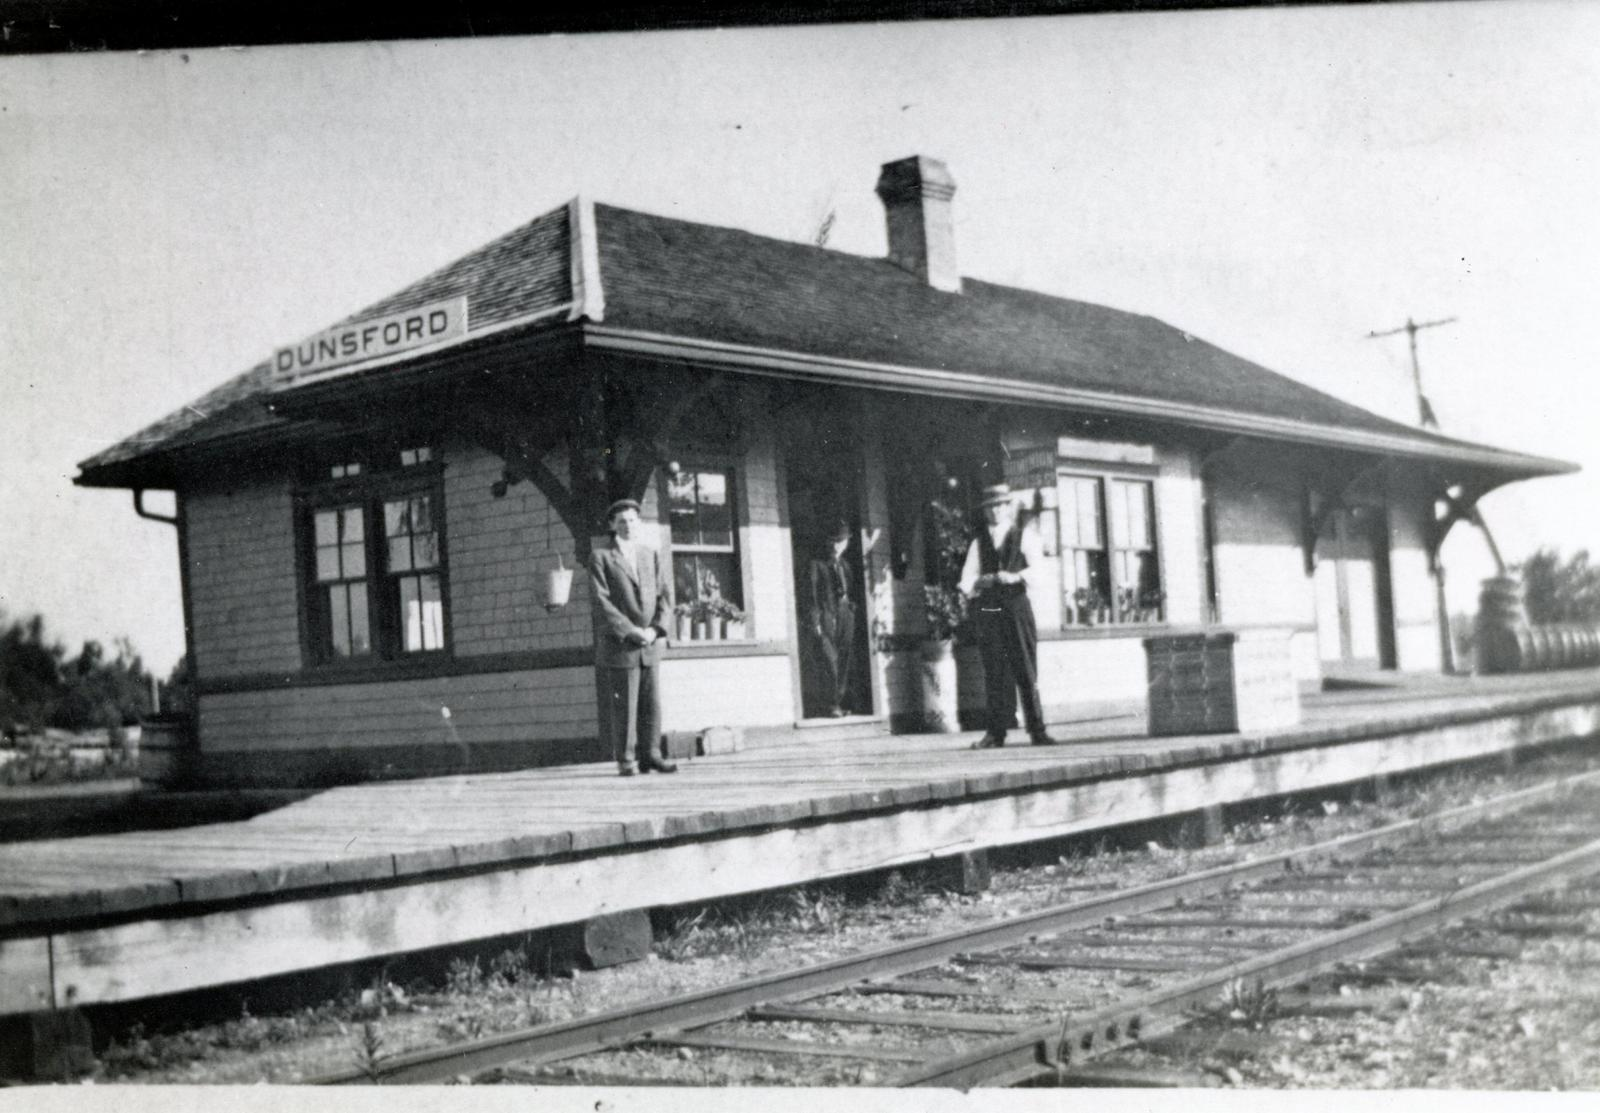 page 24 - Dunsford Station